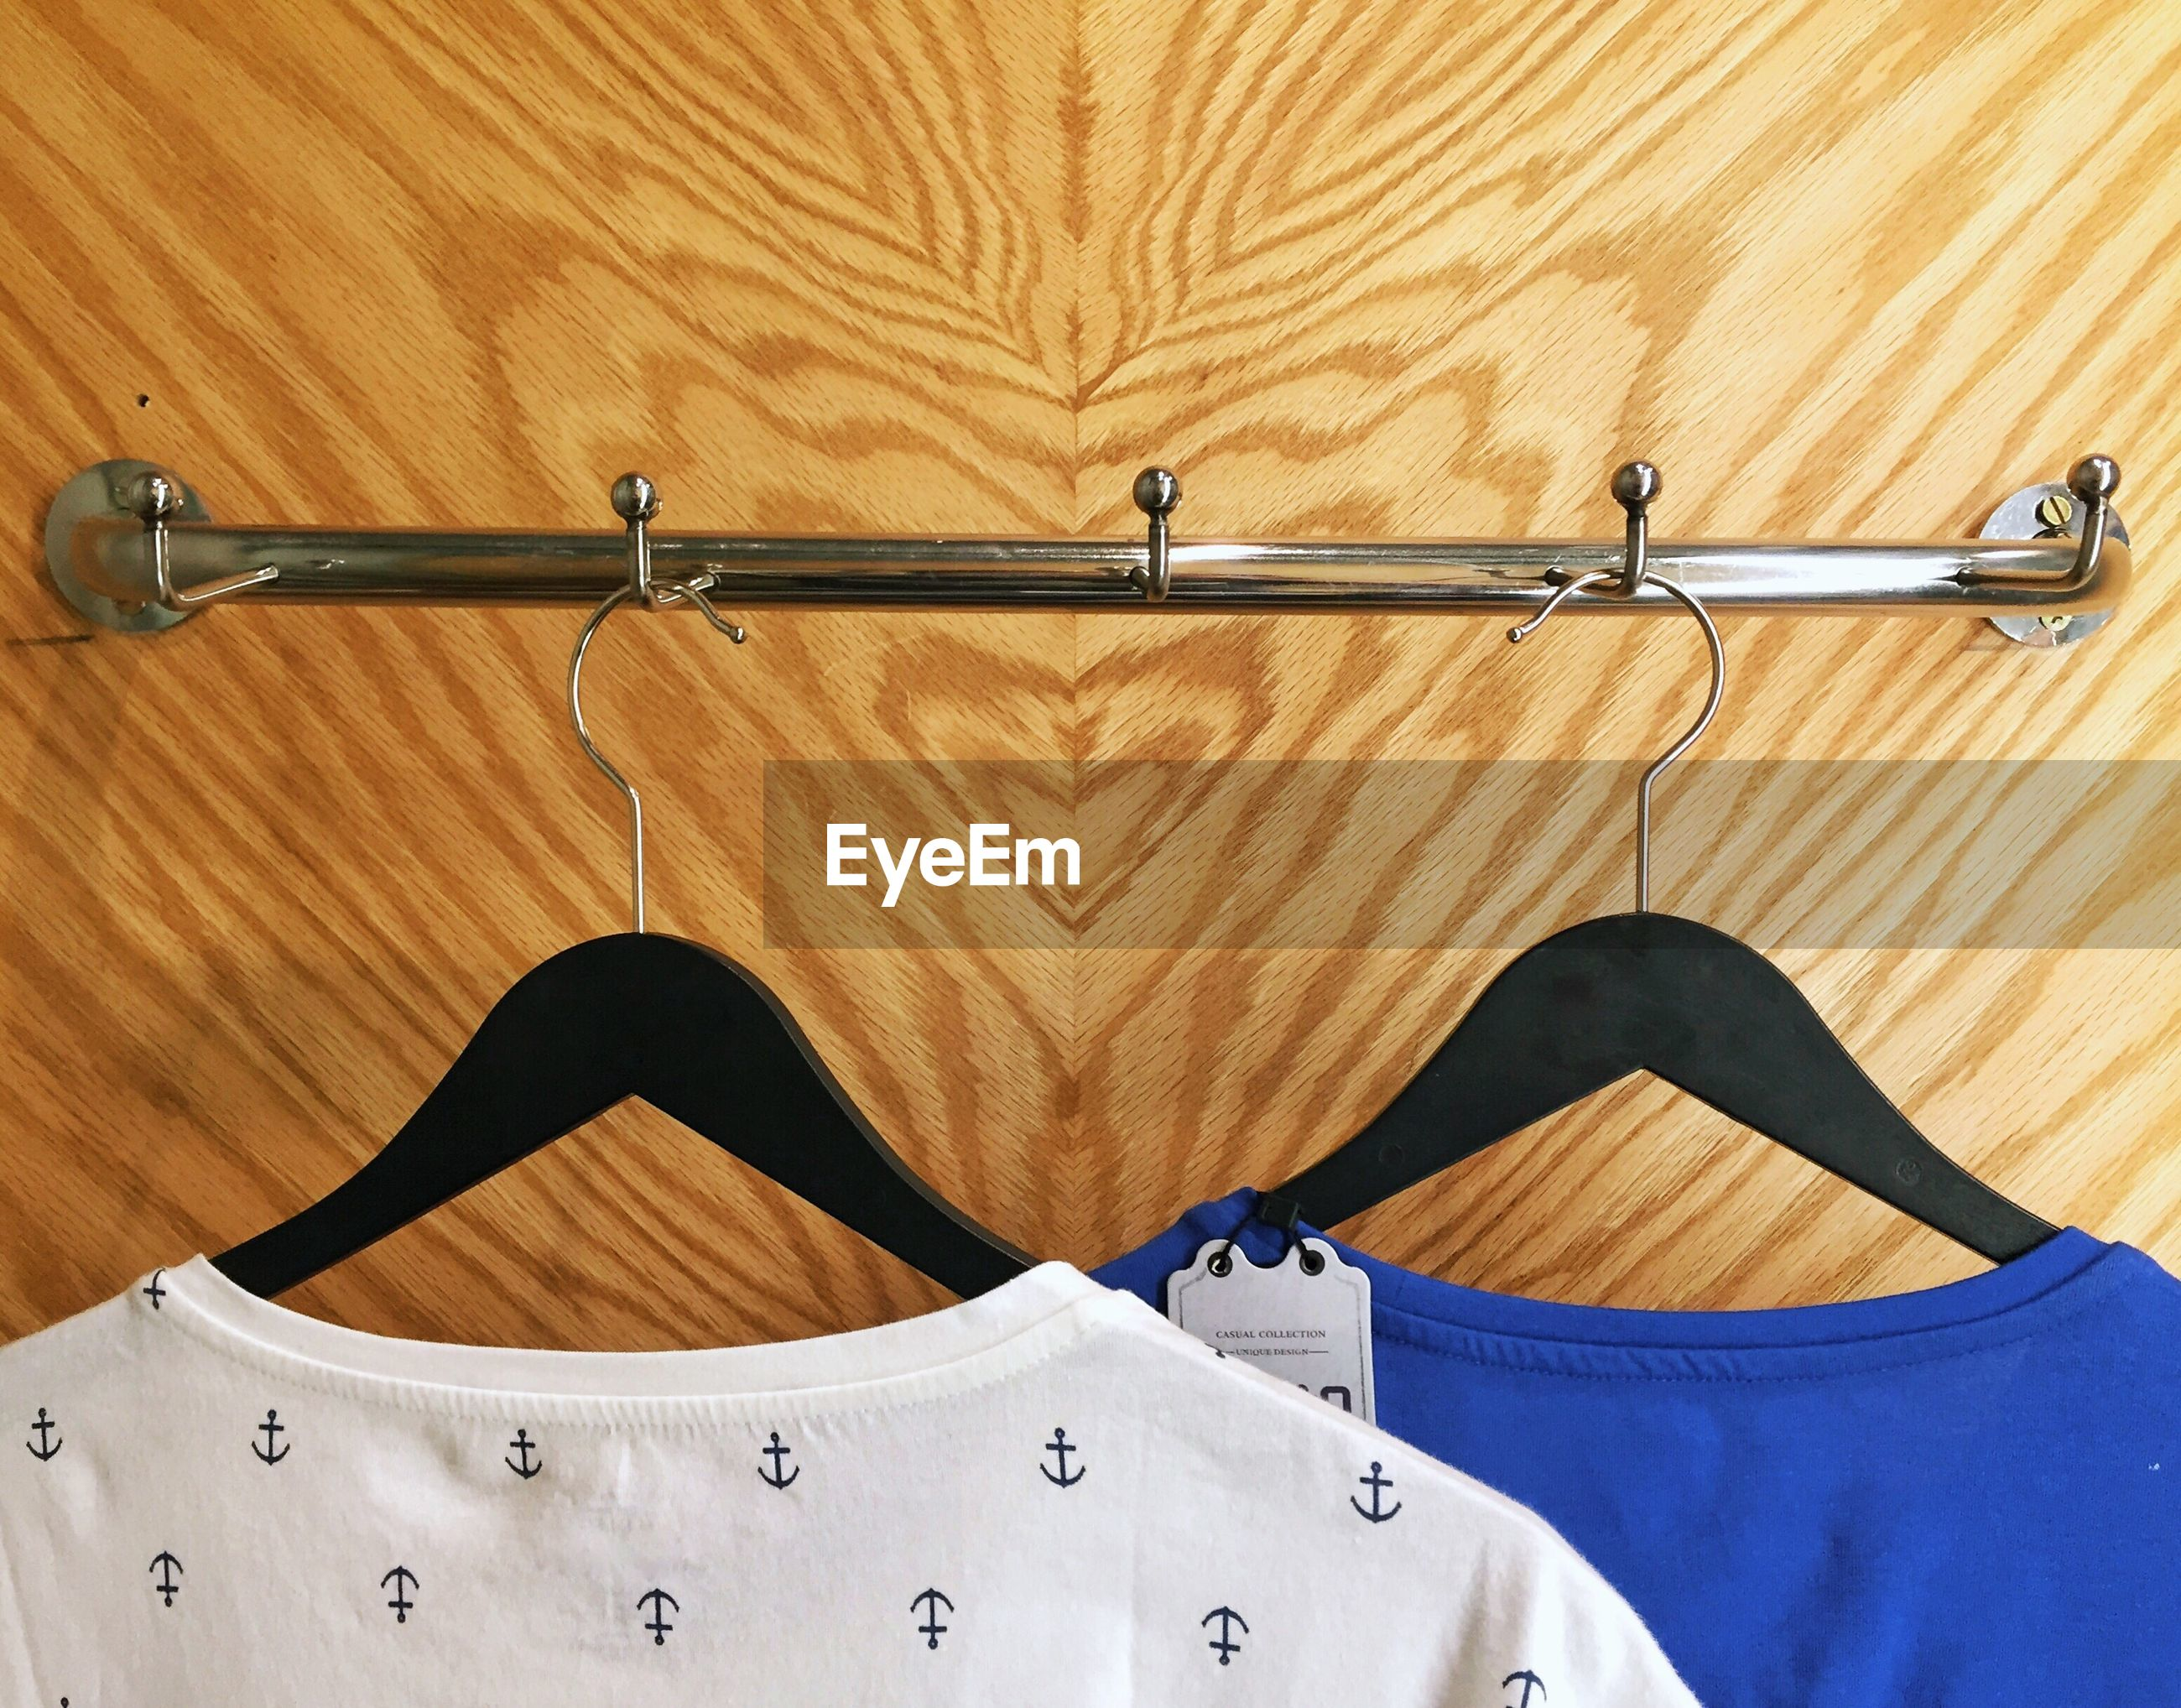 CLOSE-UP OF CLOTHES HANGING AGAINST WOOD